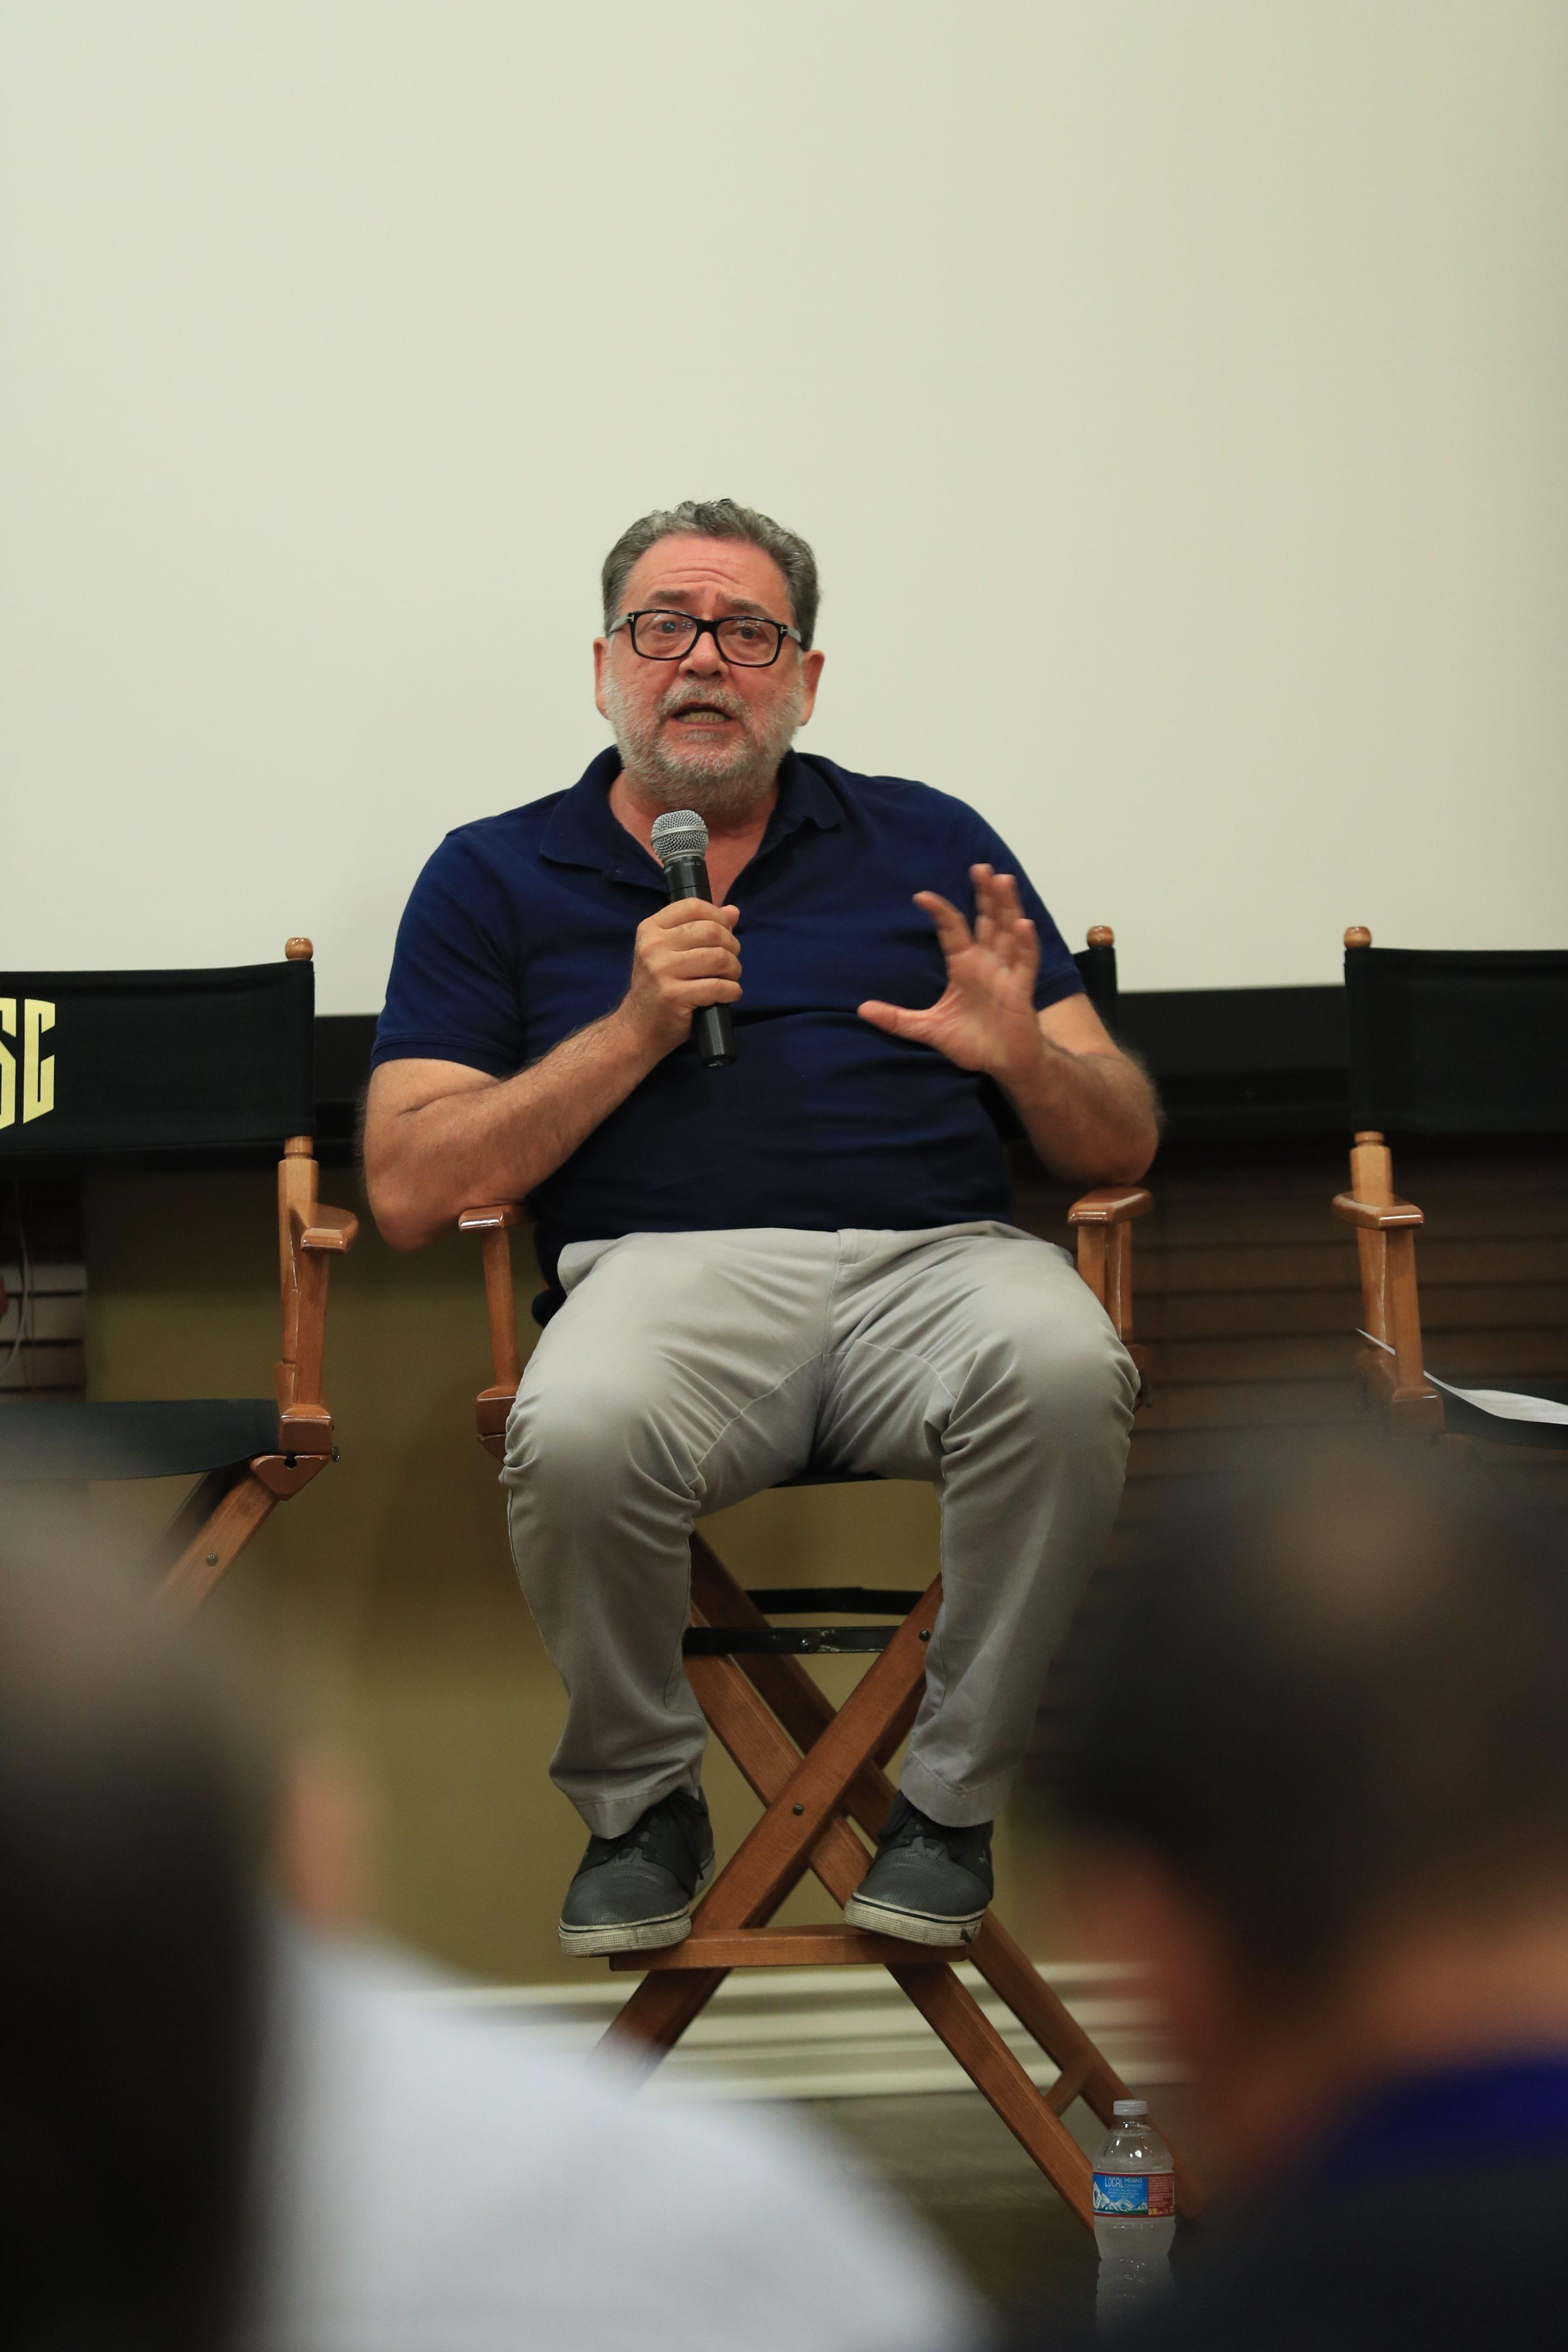 Guillermo Navarro, ASC, AMC speaks to the ICS assembly. Photo by James Neihouse, ASC